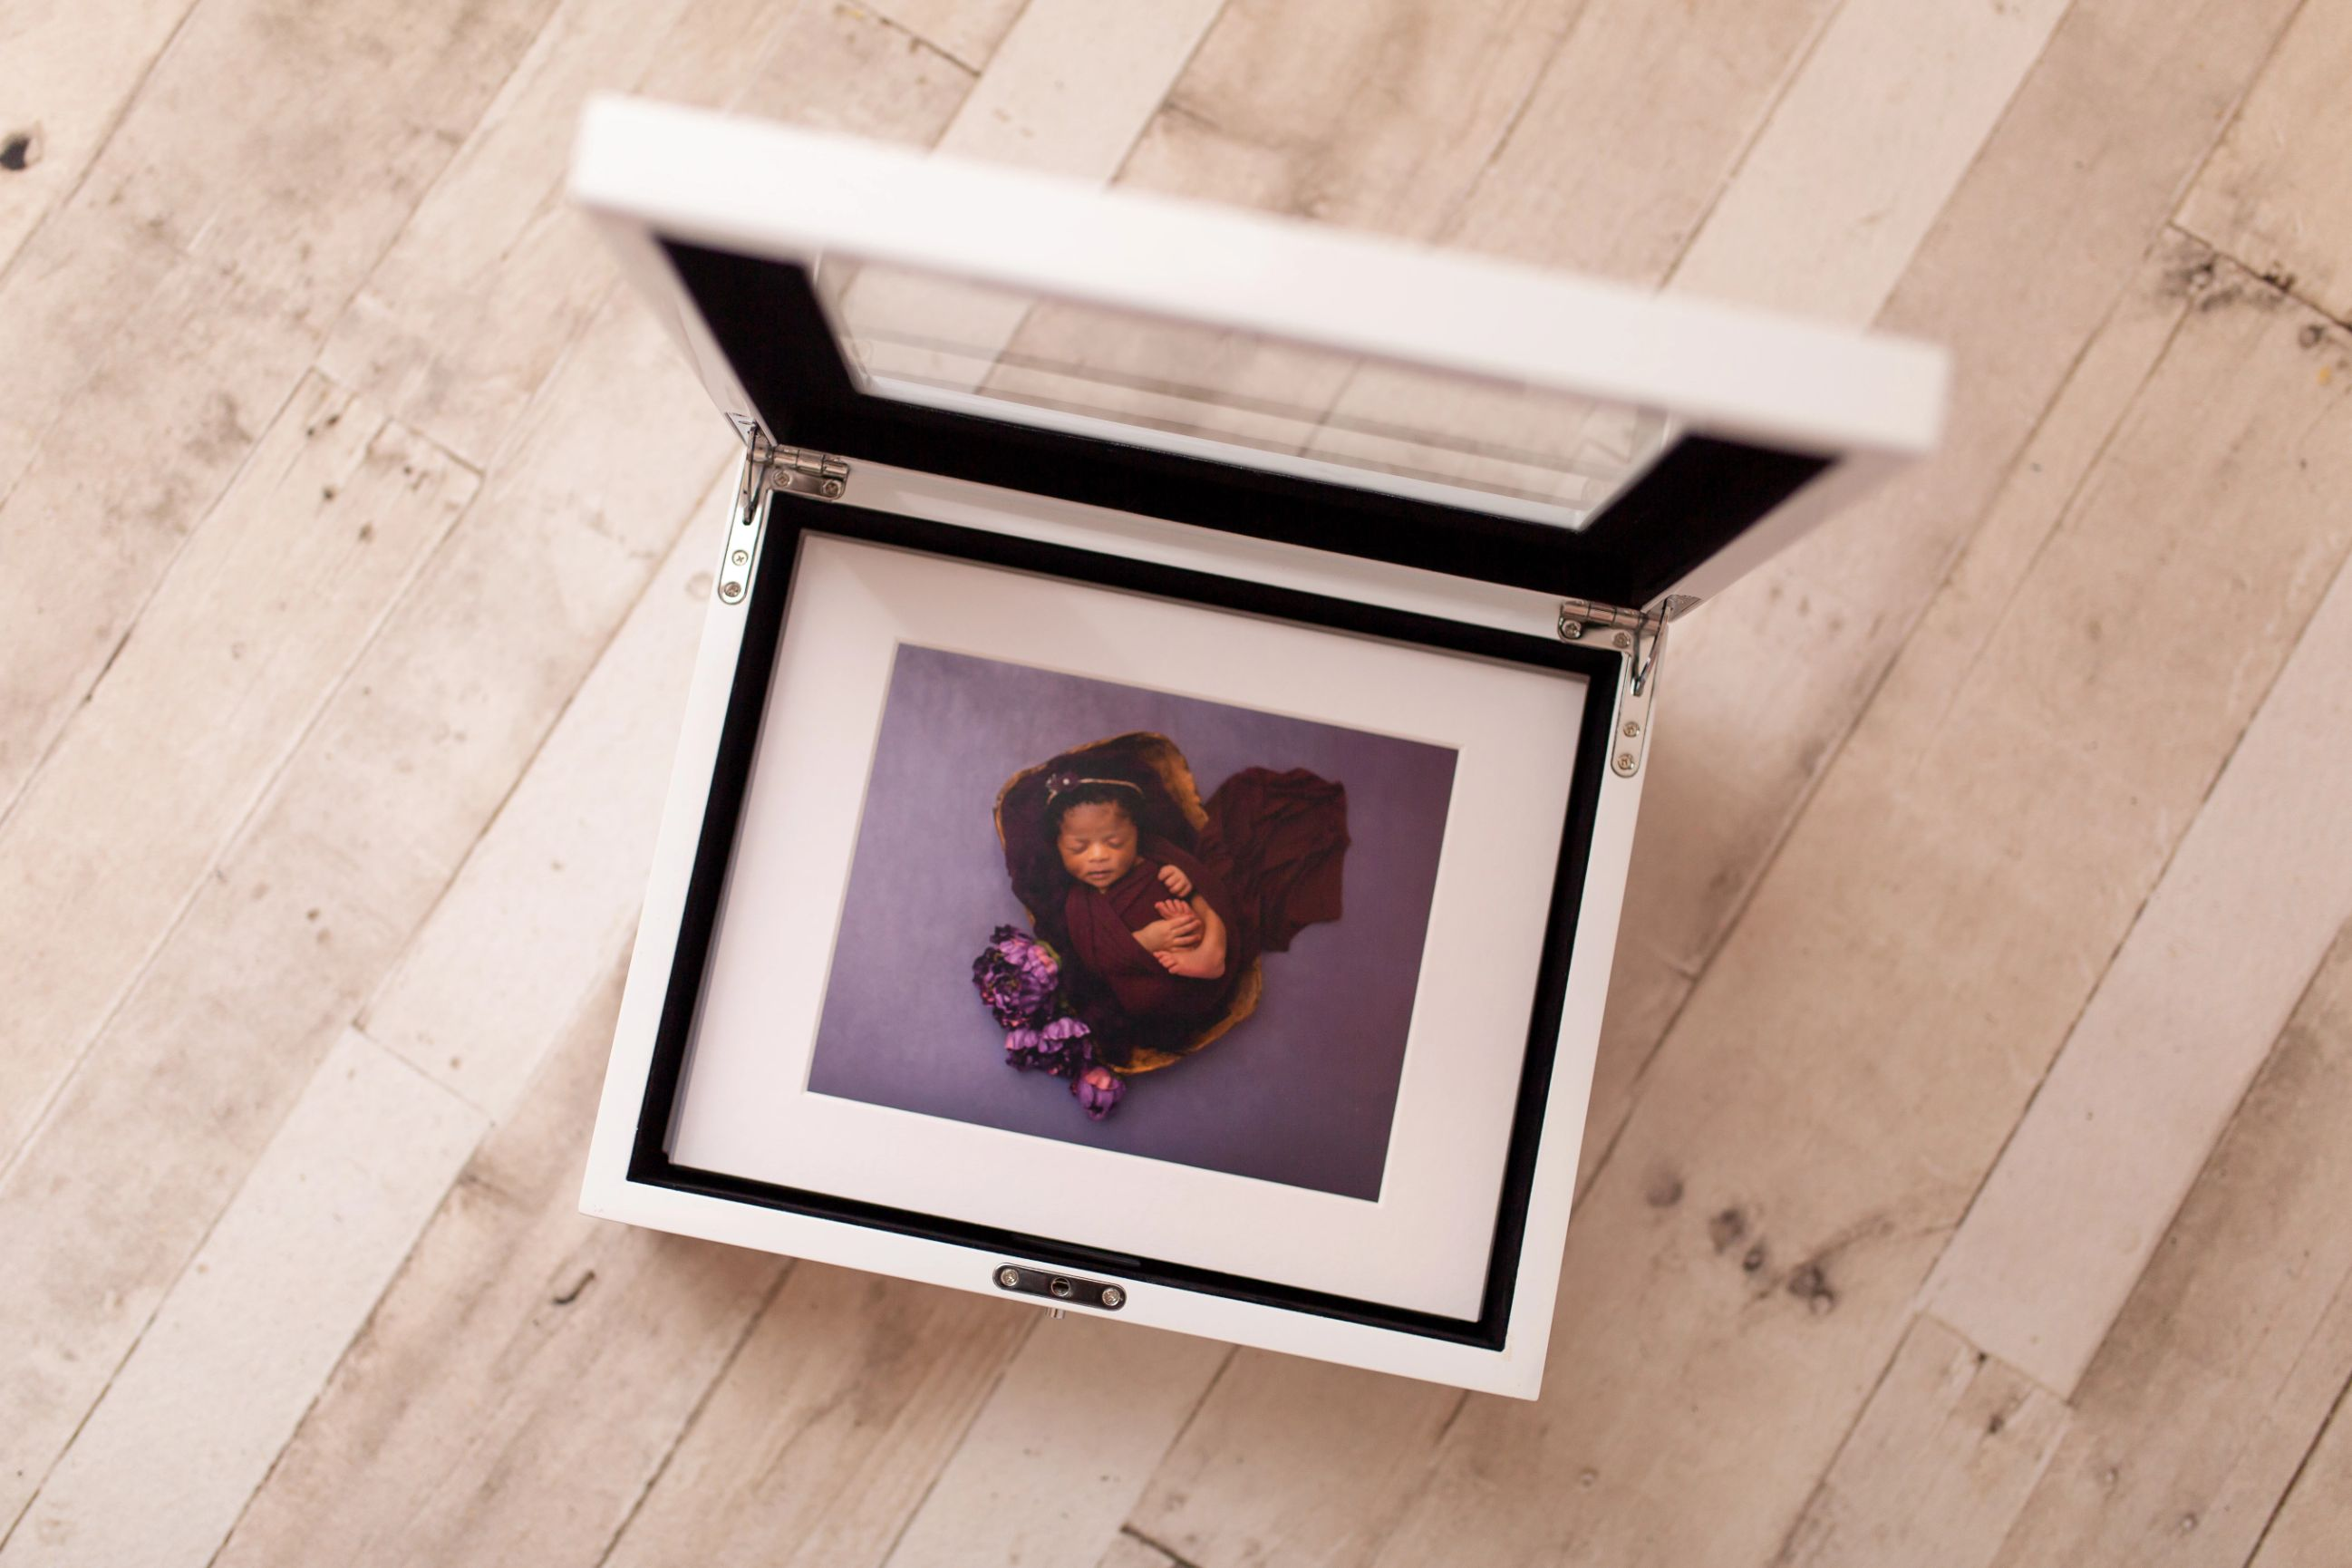 Award winning photograph of newborn in a crib with sibling displayed in a folio box